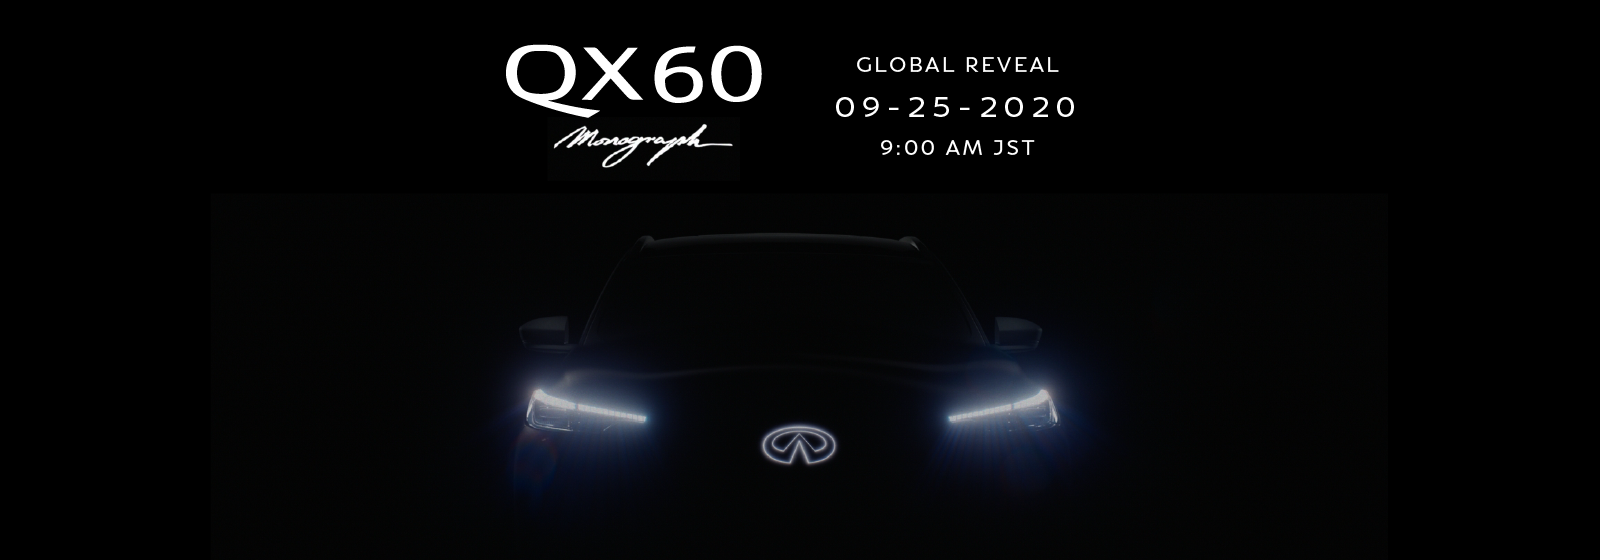 QX60 Monograph Global Reveal on September 25, 2020. Click to contact us for more information.